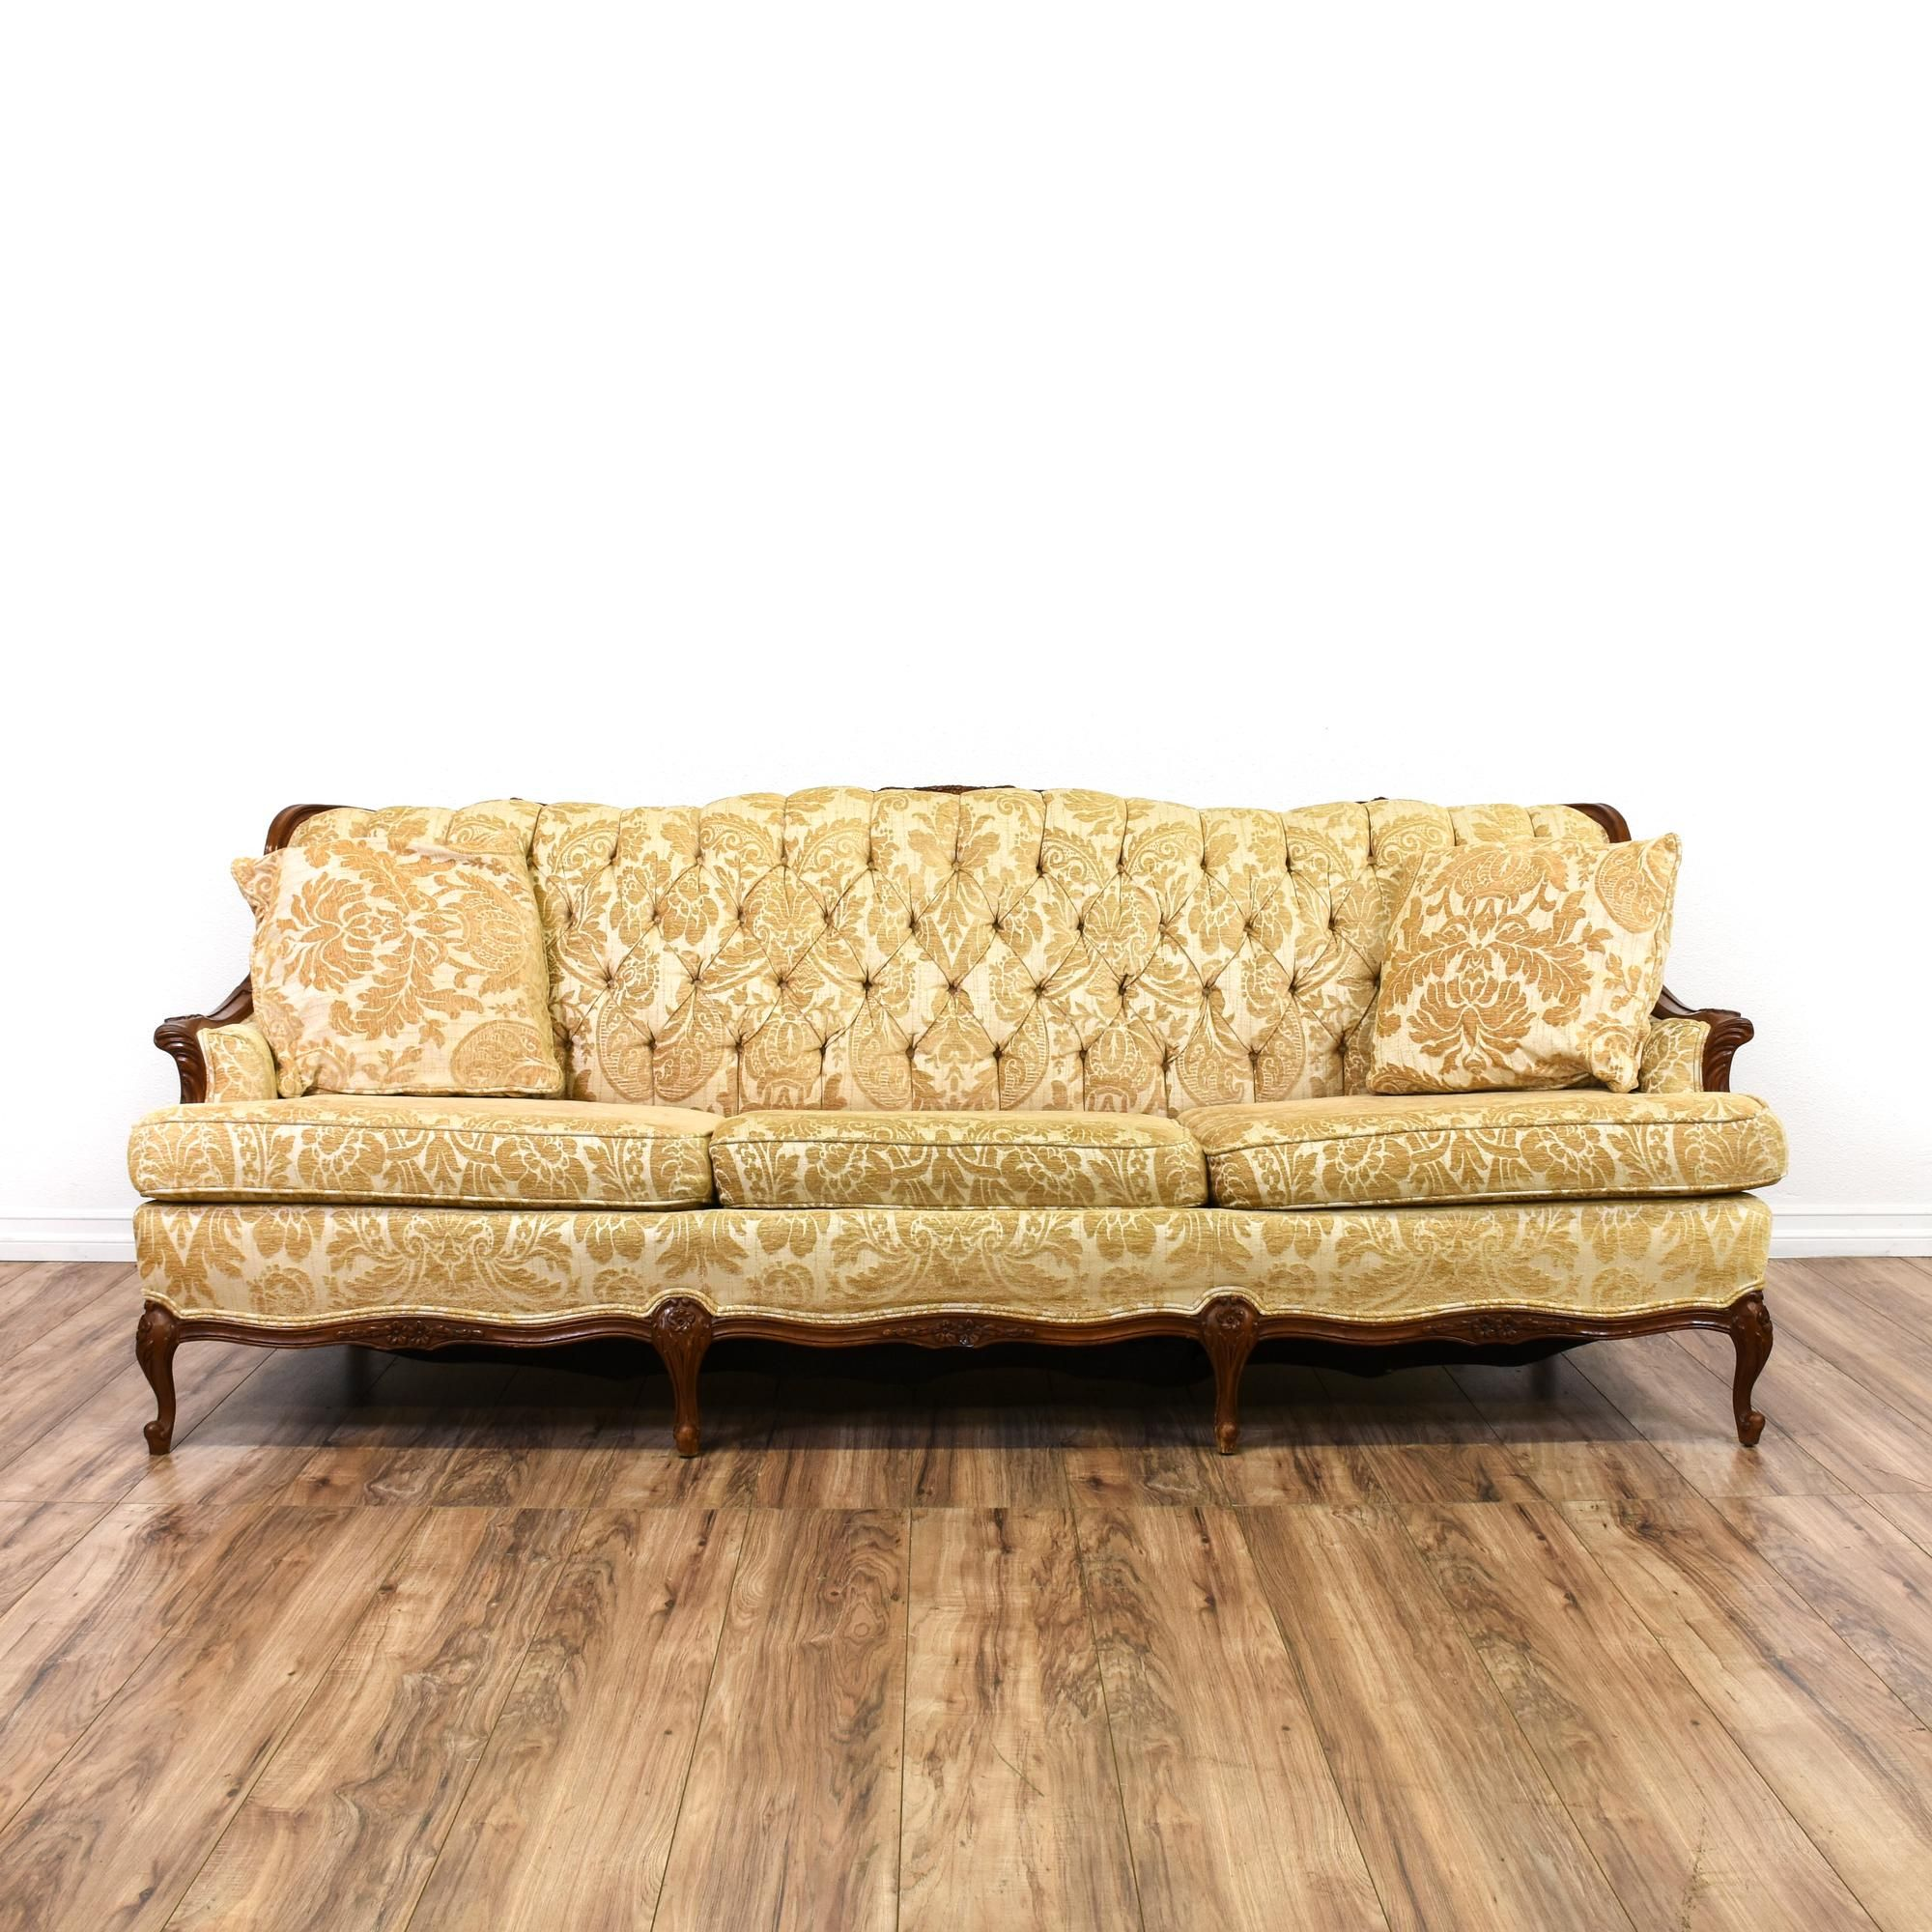 This victorian style sofa is upholstered in a durable floral damask print with beige and gold